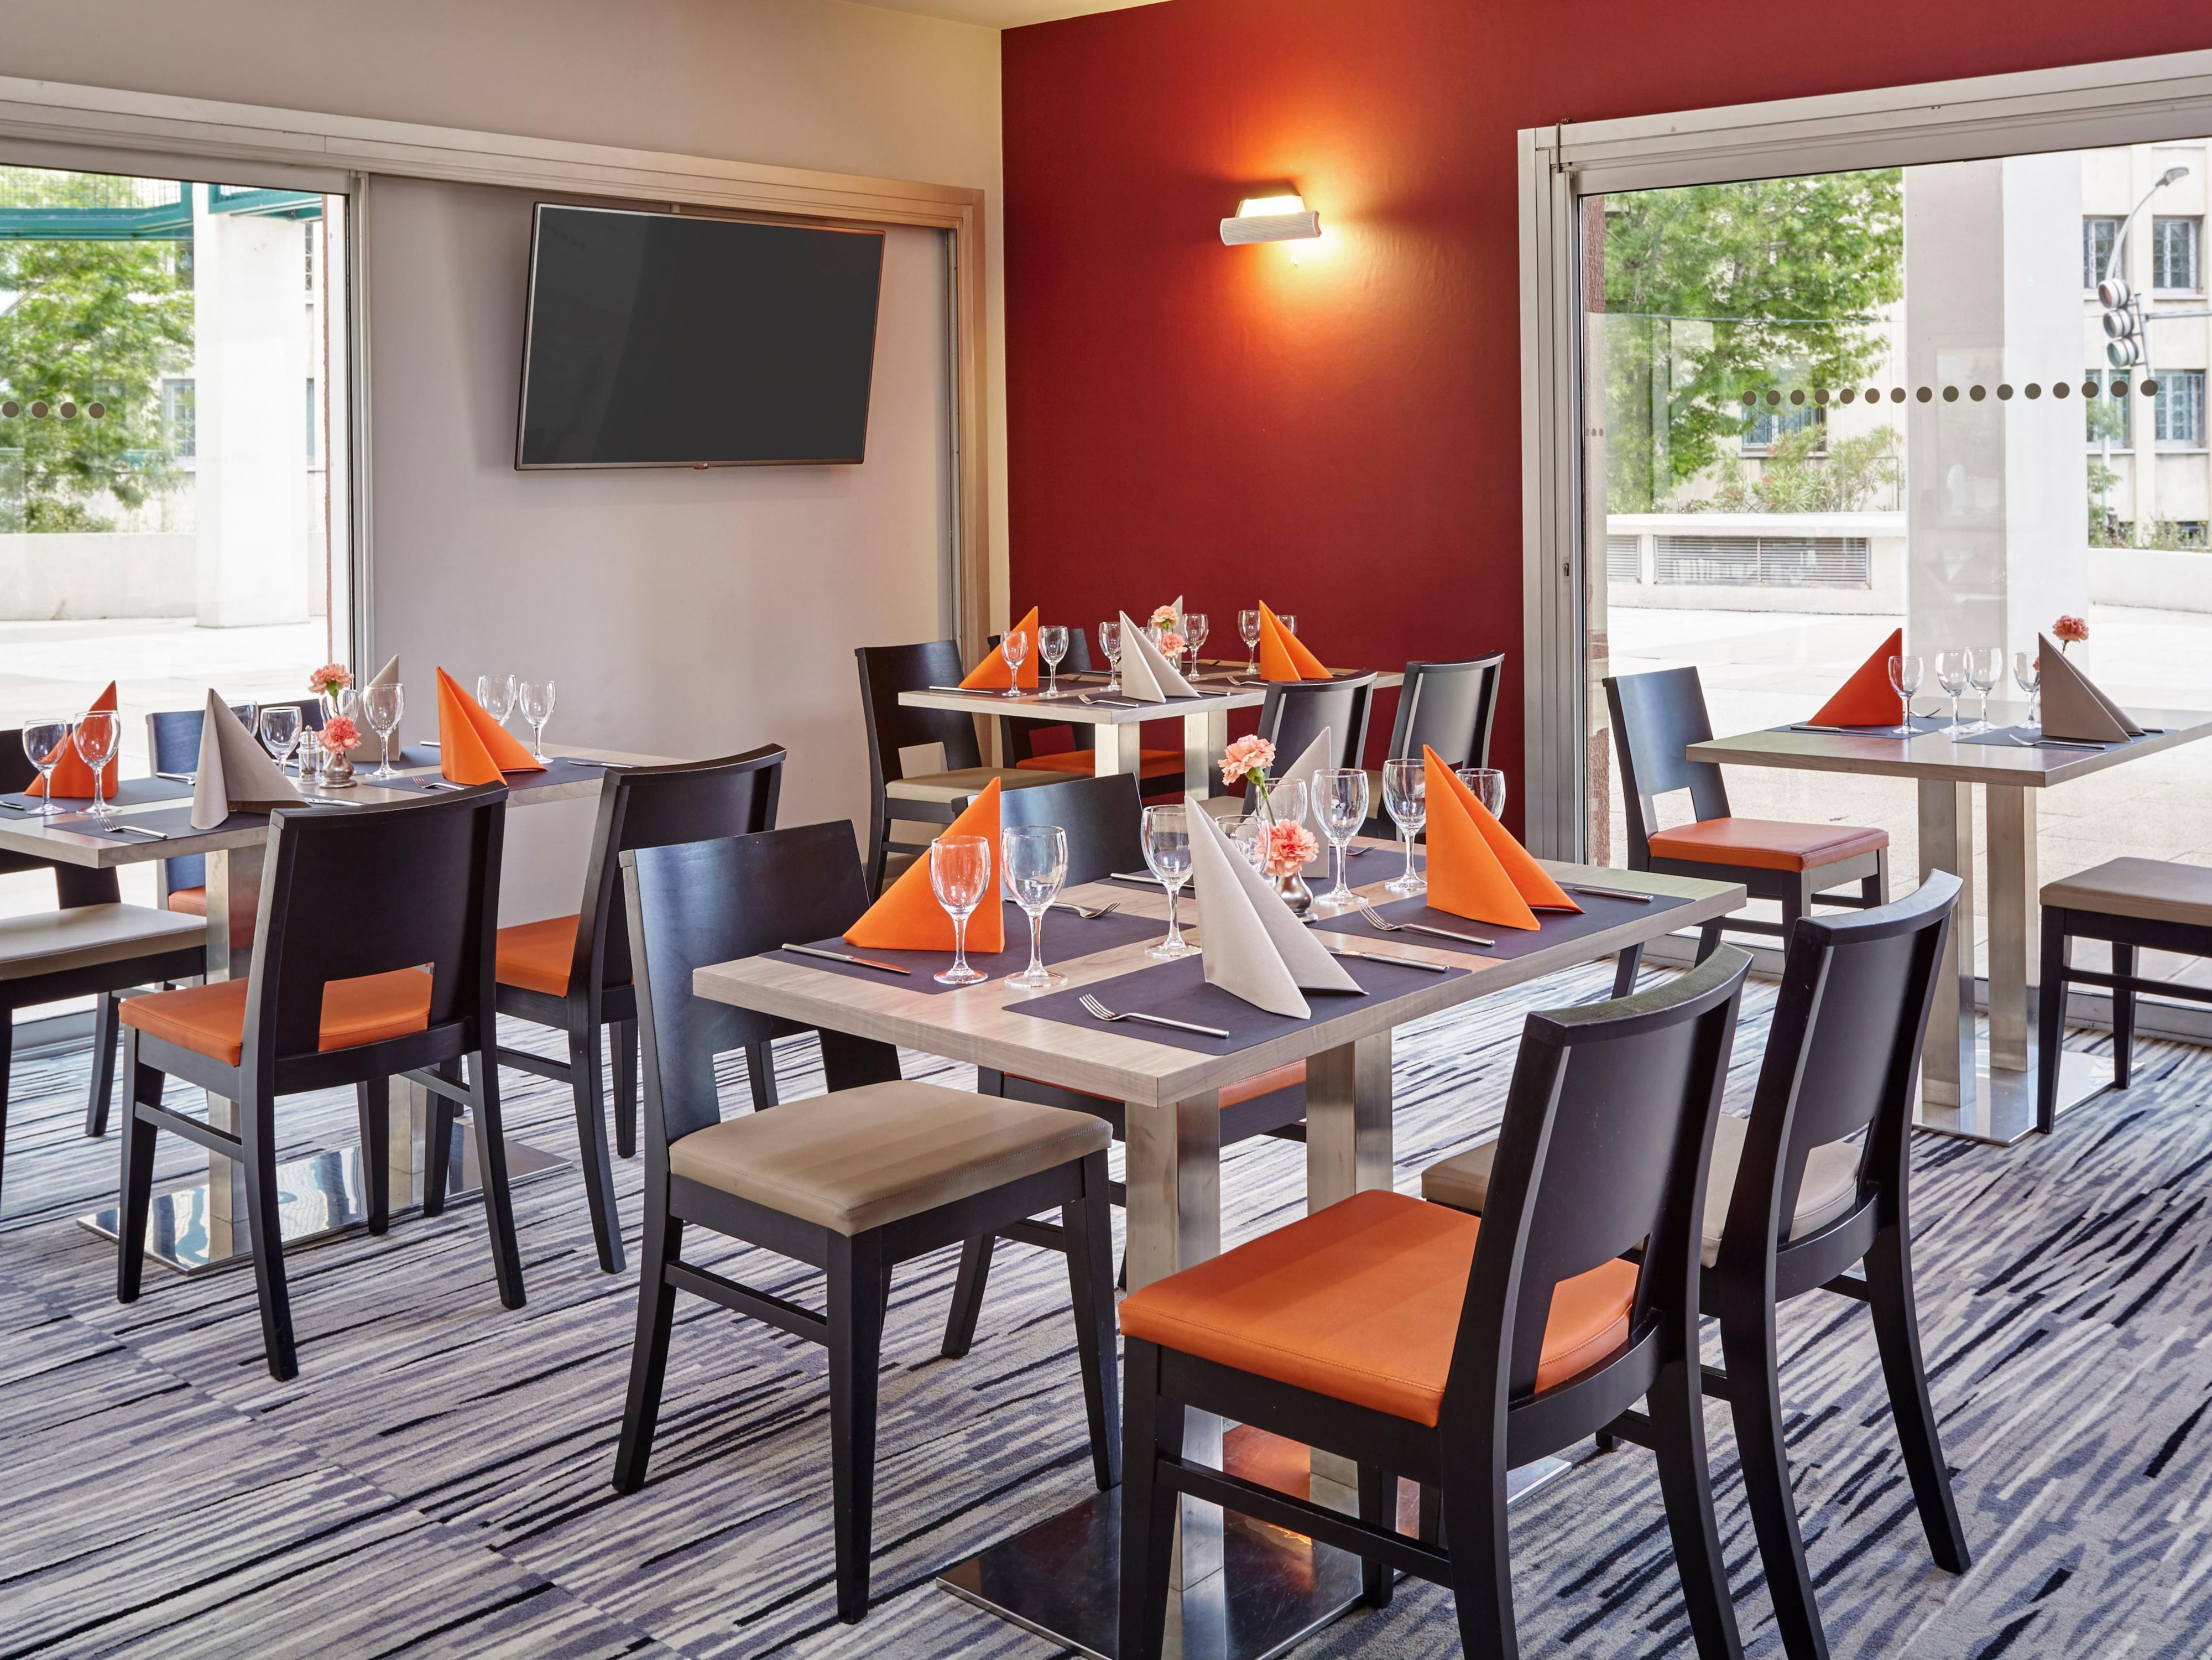 Dine with us in our stylish L'Observatoire Restaurant